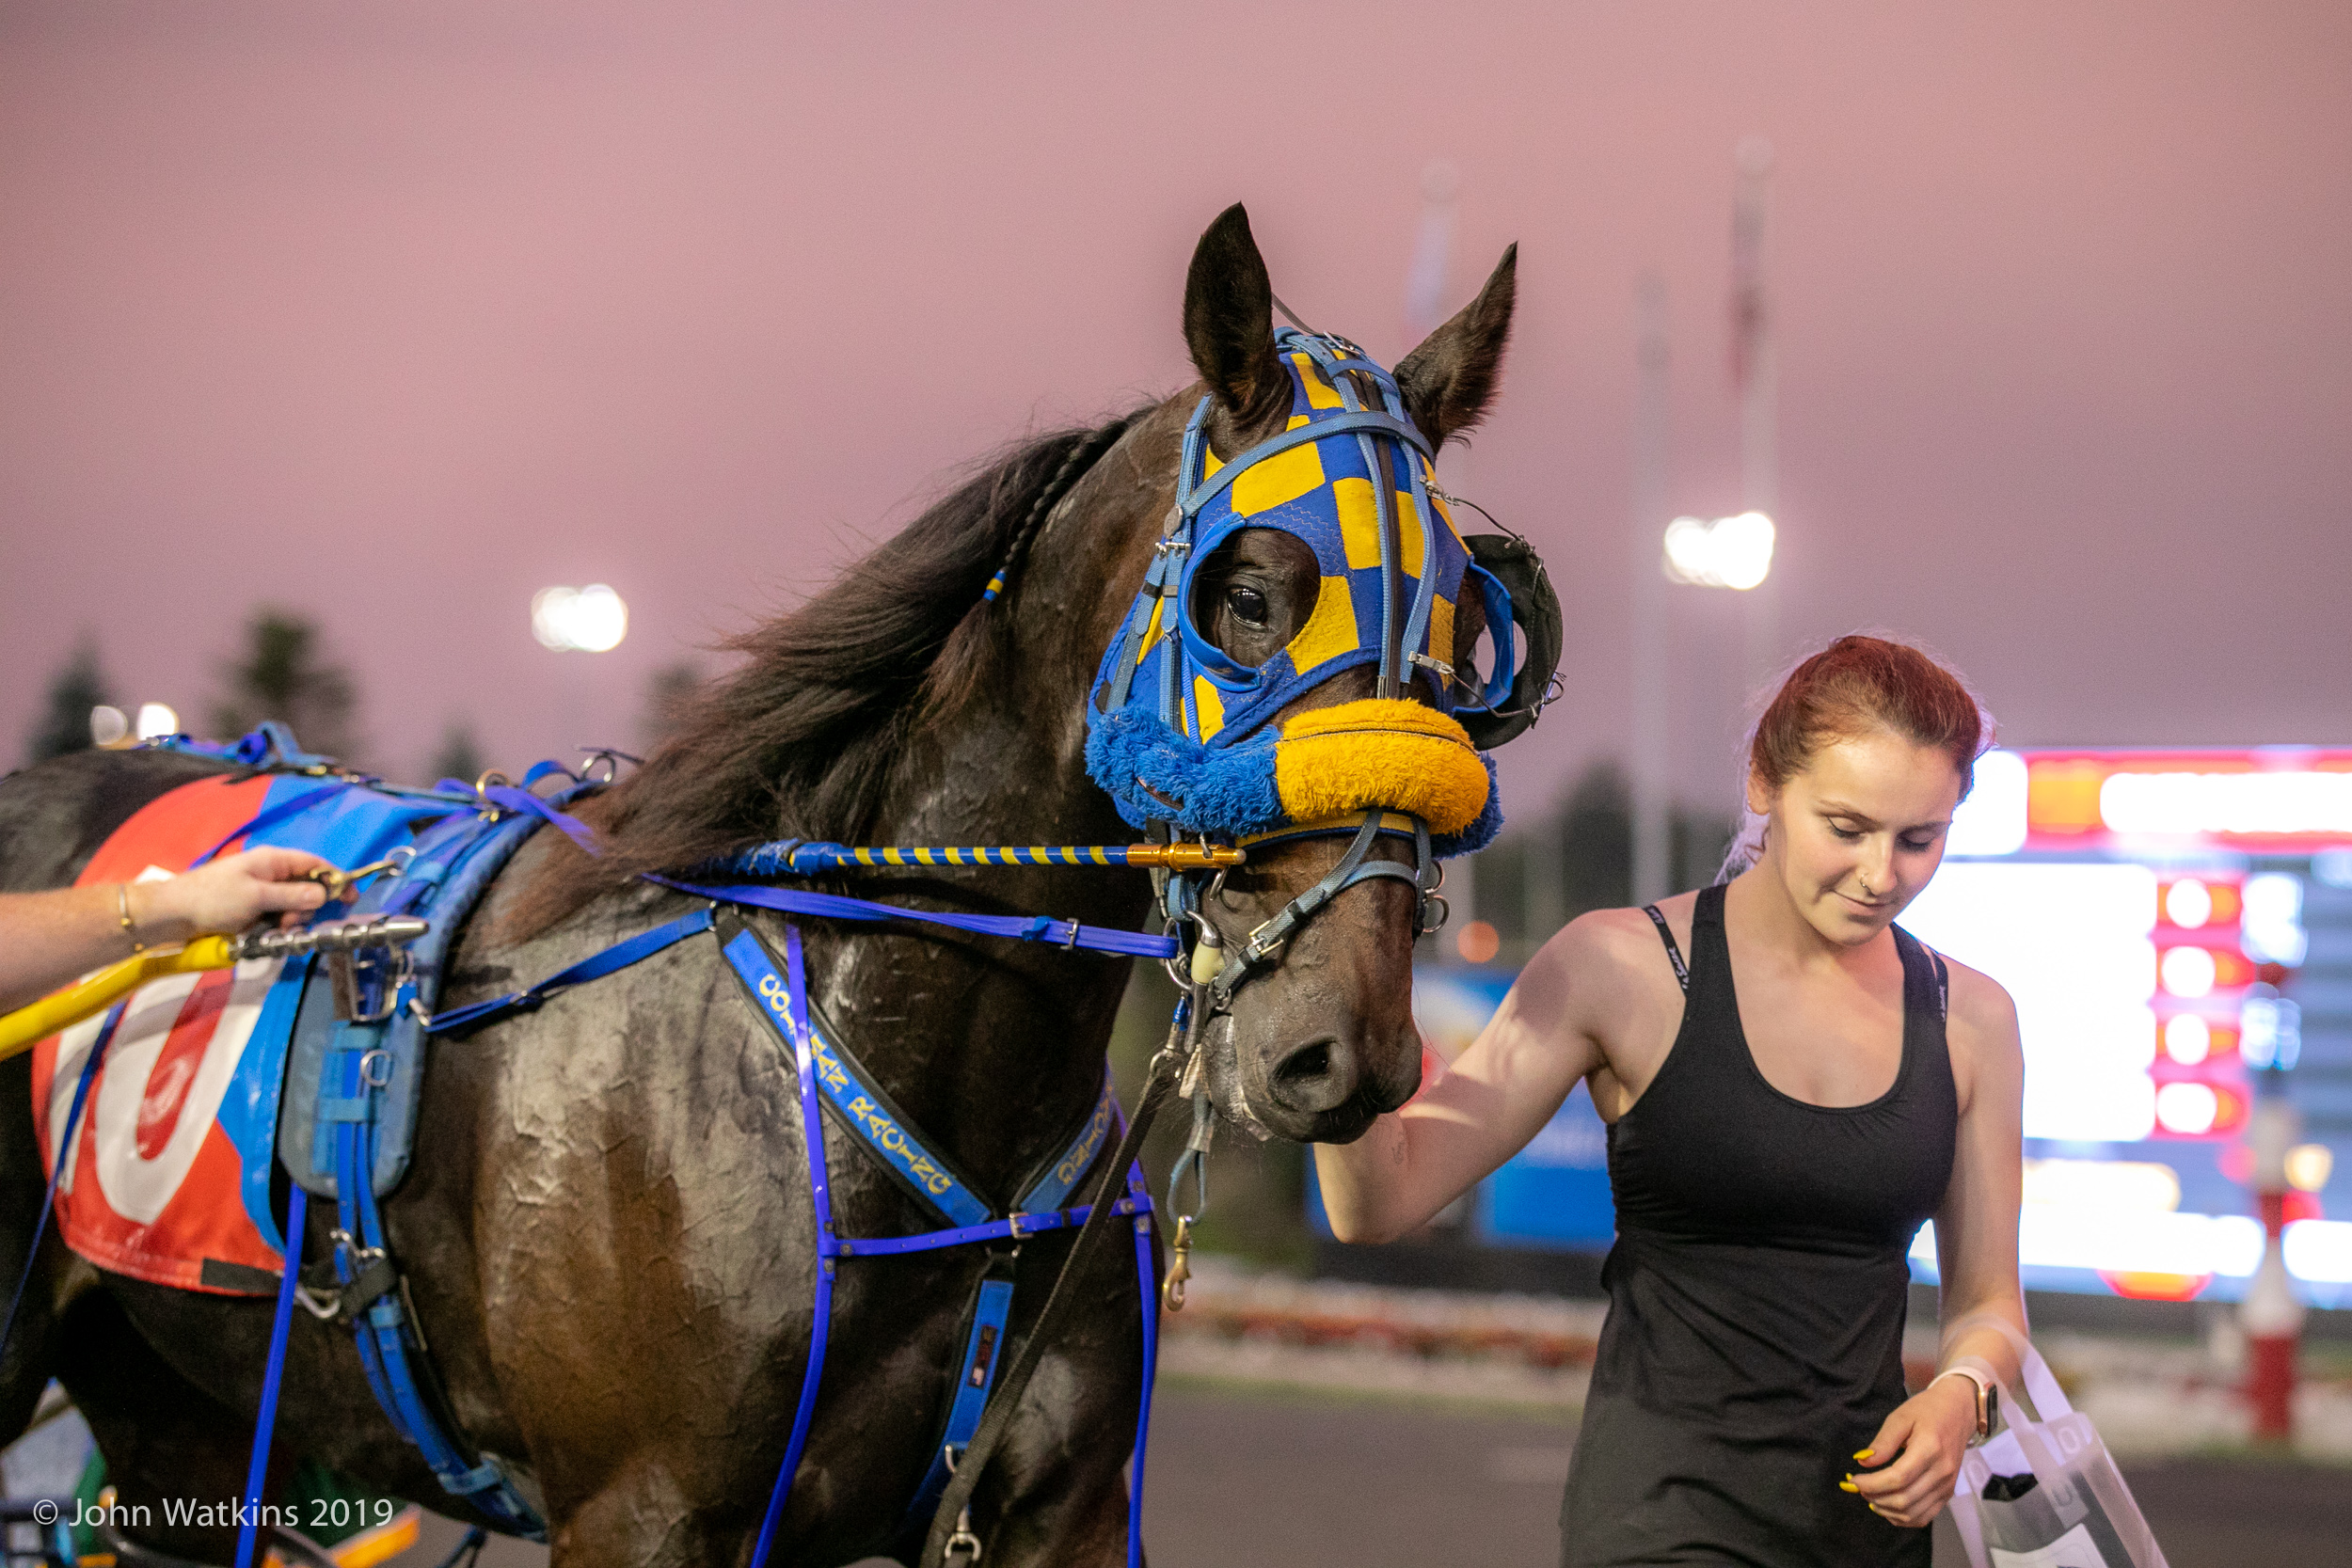 Woodbine Entertainment To Temporarily Suspend Racing At Mohawk Park